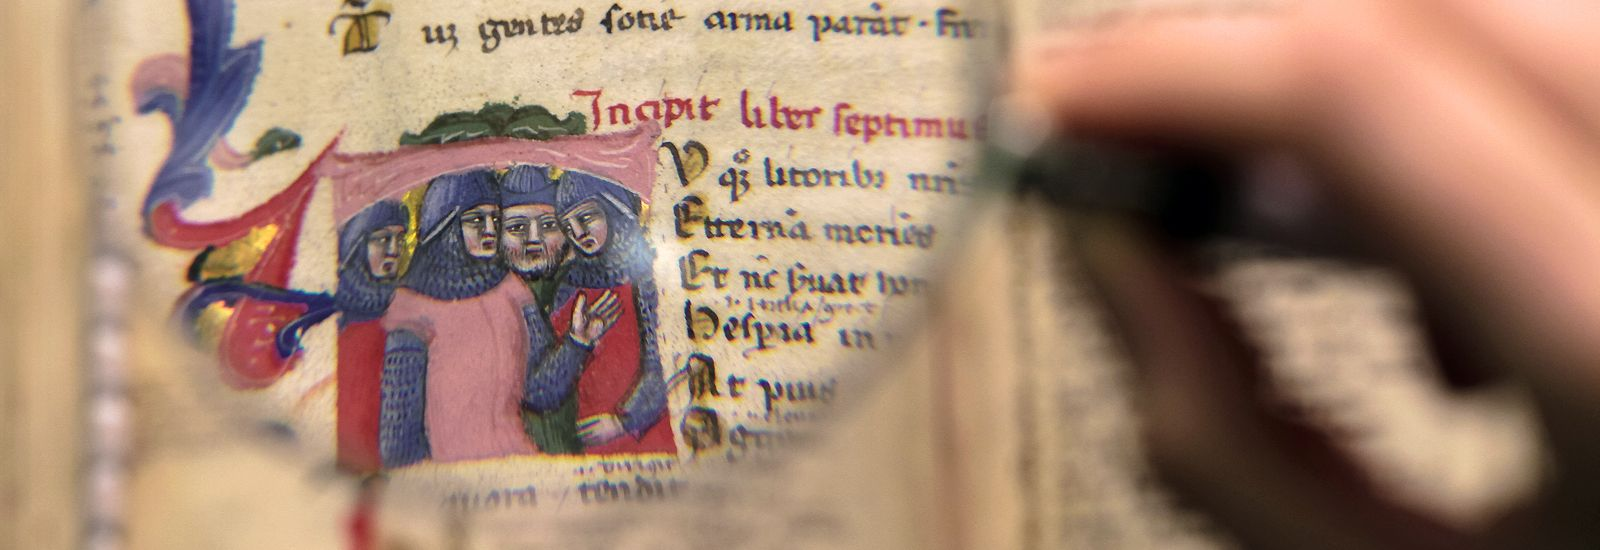 Magnifying glass showing a close up of text and figures on a manuscript